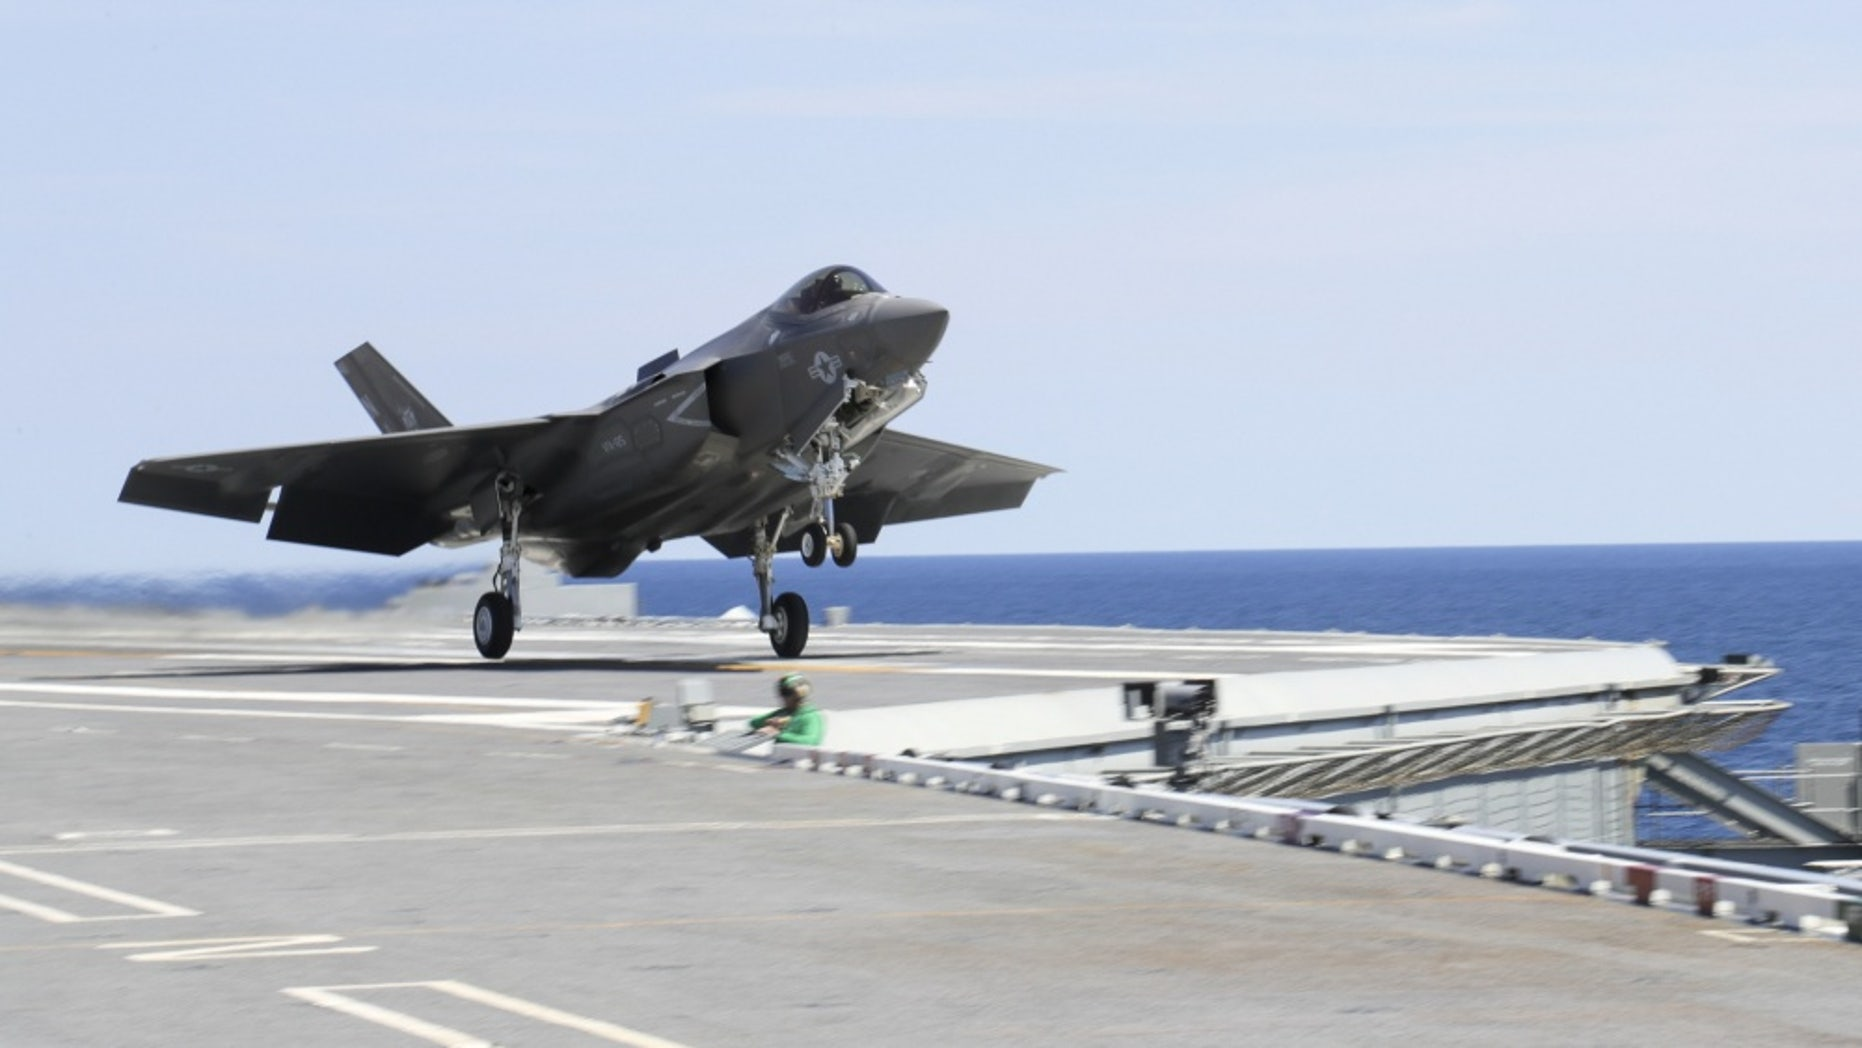 ATLANTIC OCEAN (Sept. 4, 2017) An F-35C Lightning II assigned to the Grim Reapers of Strike Fighter Squadron (VFA 101) launches off the flight deck of the Nimitz-class aircraft carrier USS Abraham Lincoln (CVN 72). (U.S. Navy photo by Mass Communication Specialist 1st Class Josue Escobosa/Released)